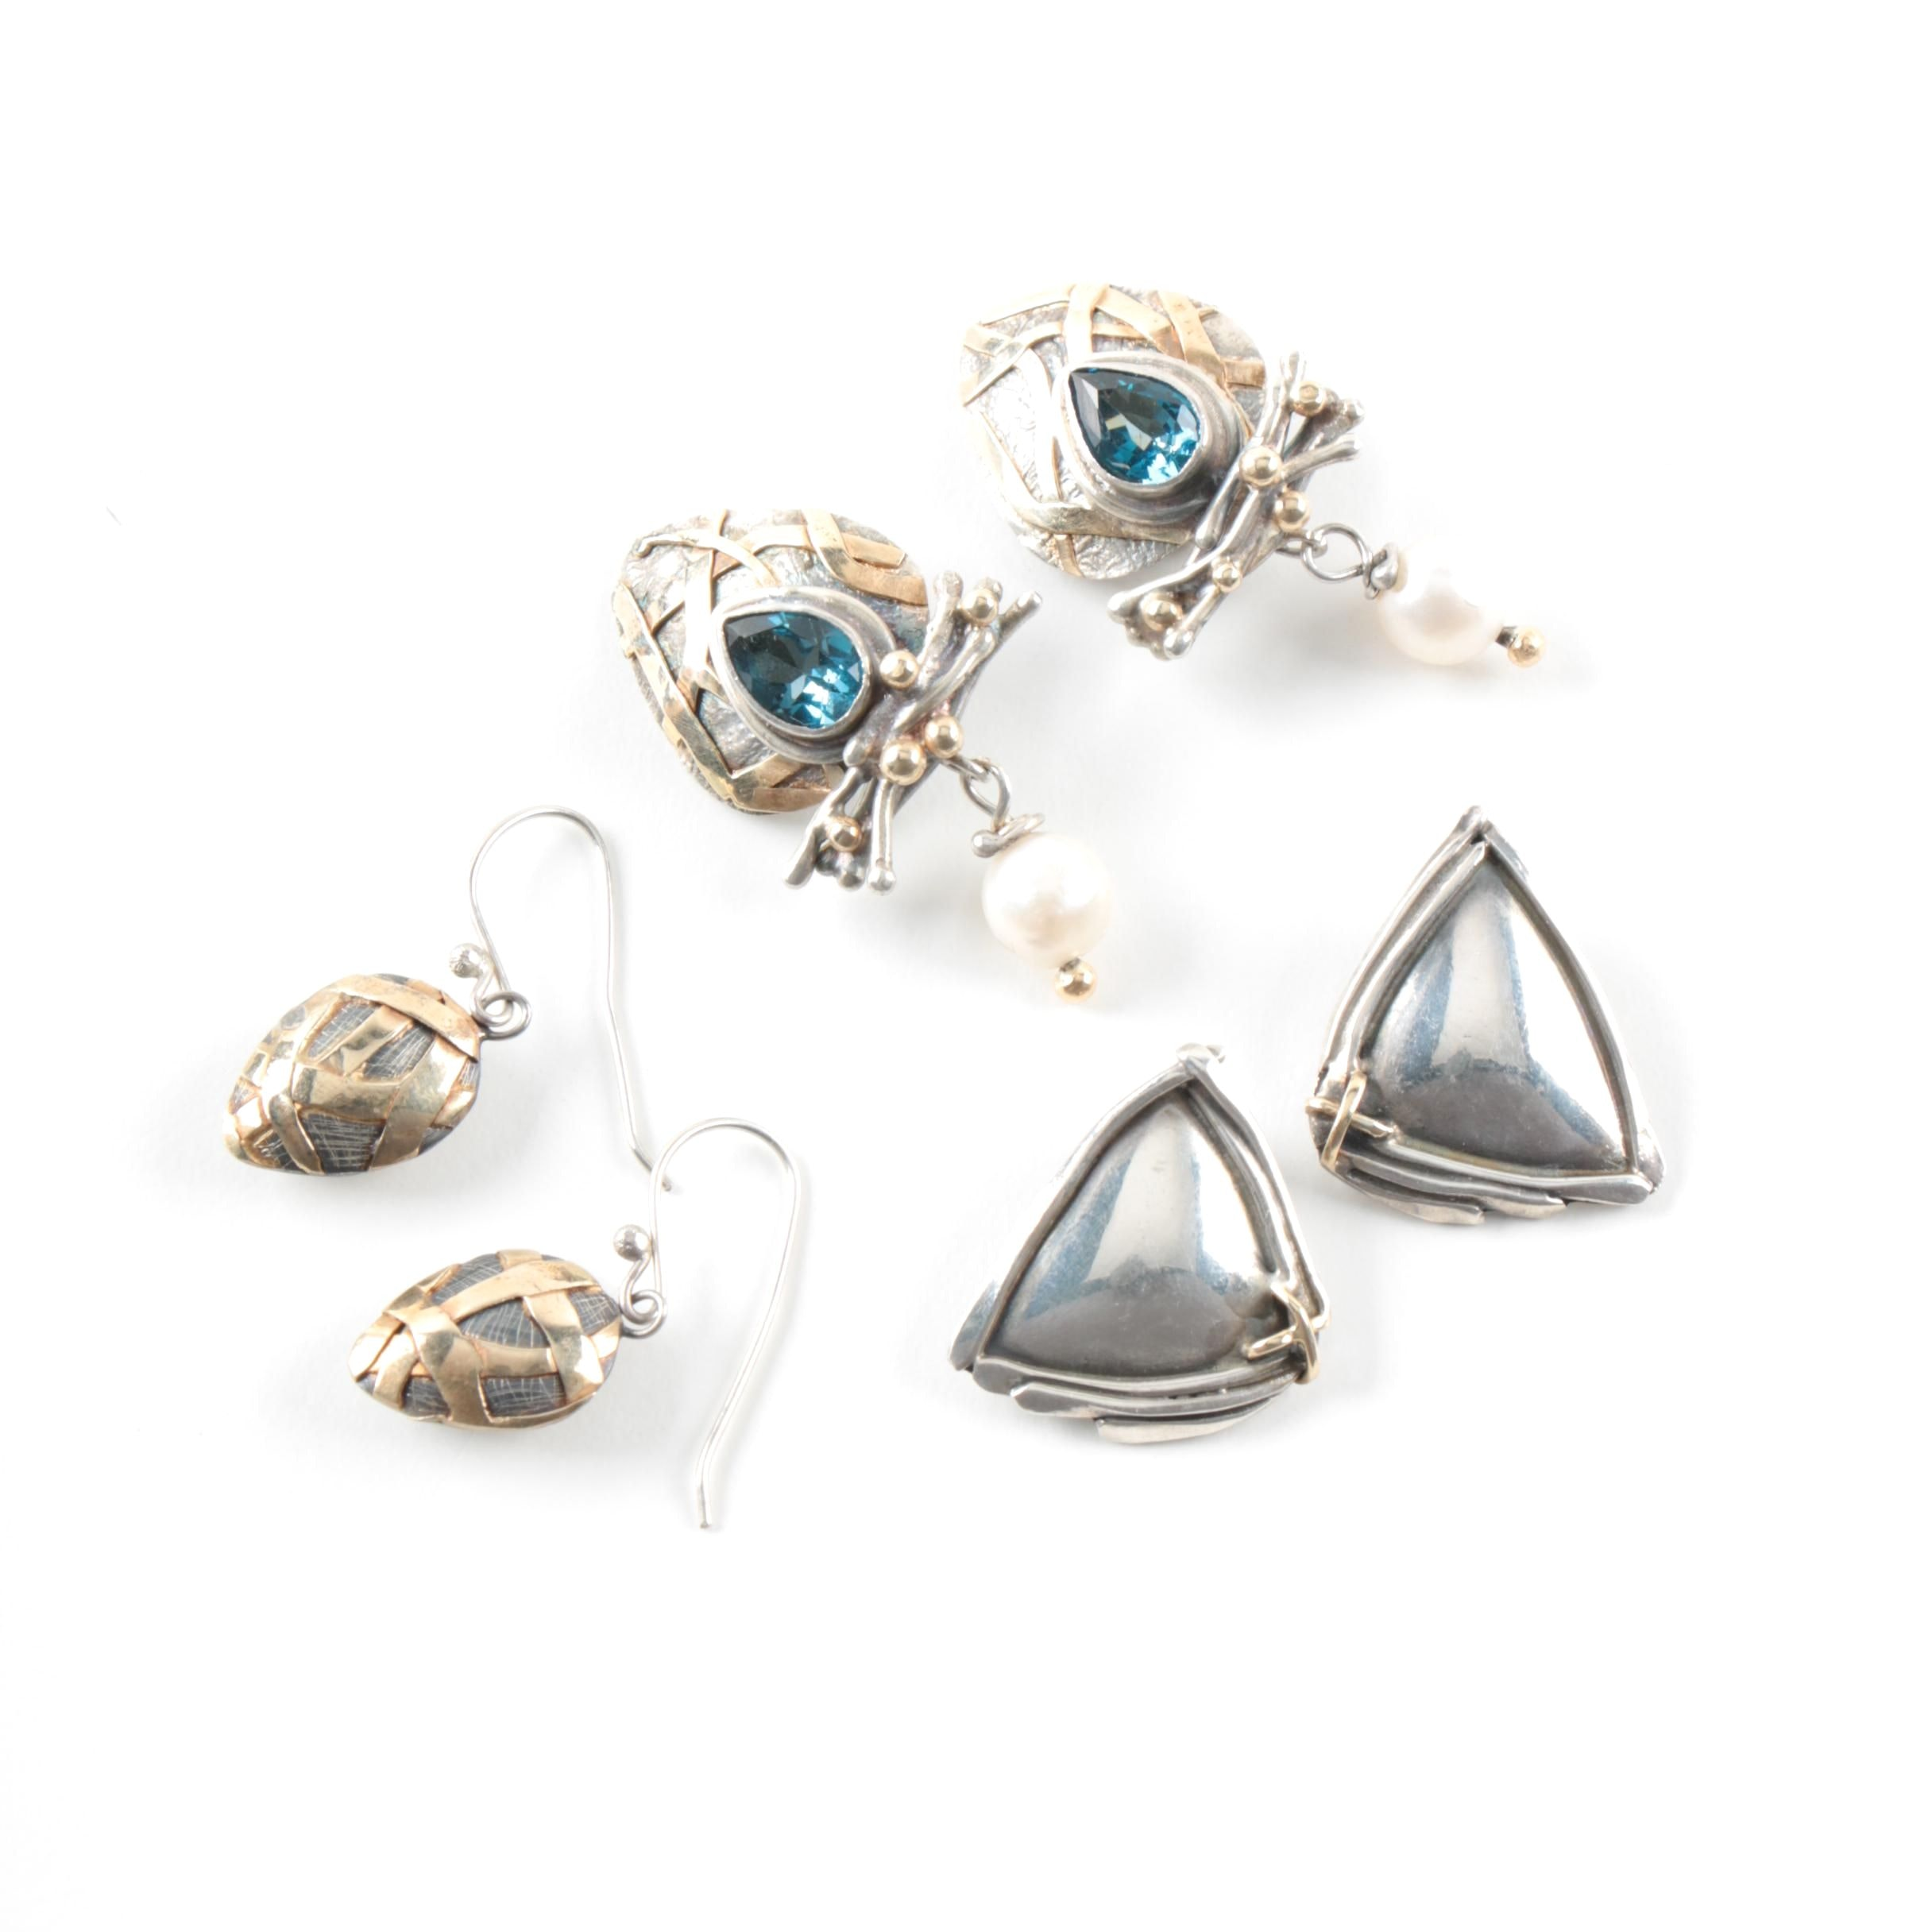 Sterling Silver Earrings Featuring Cultured Pearl and London Blue Topaz